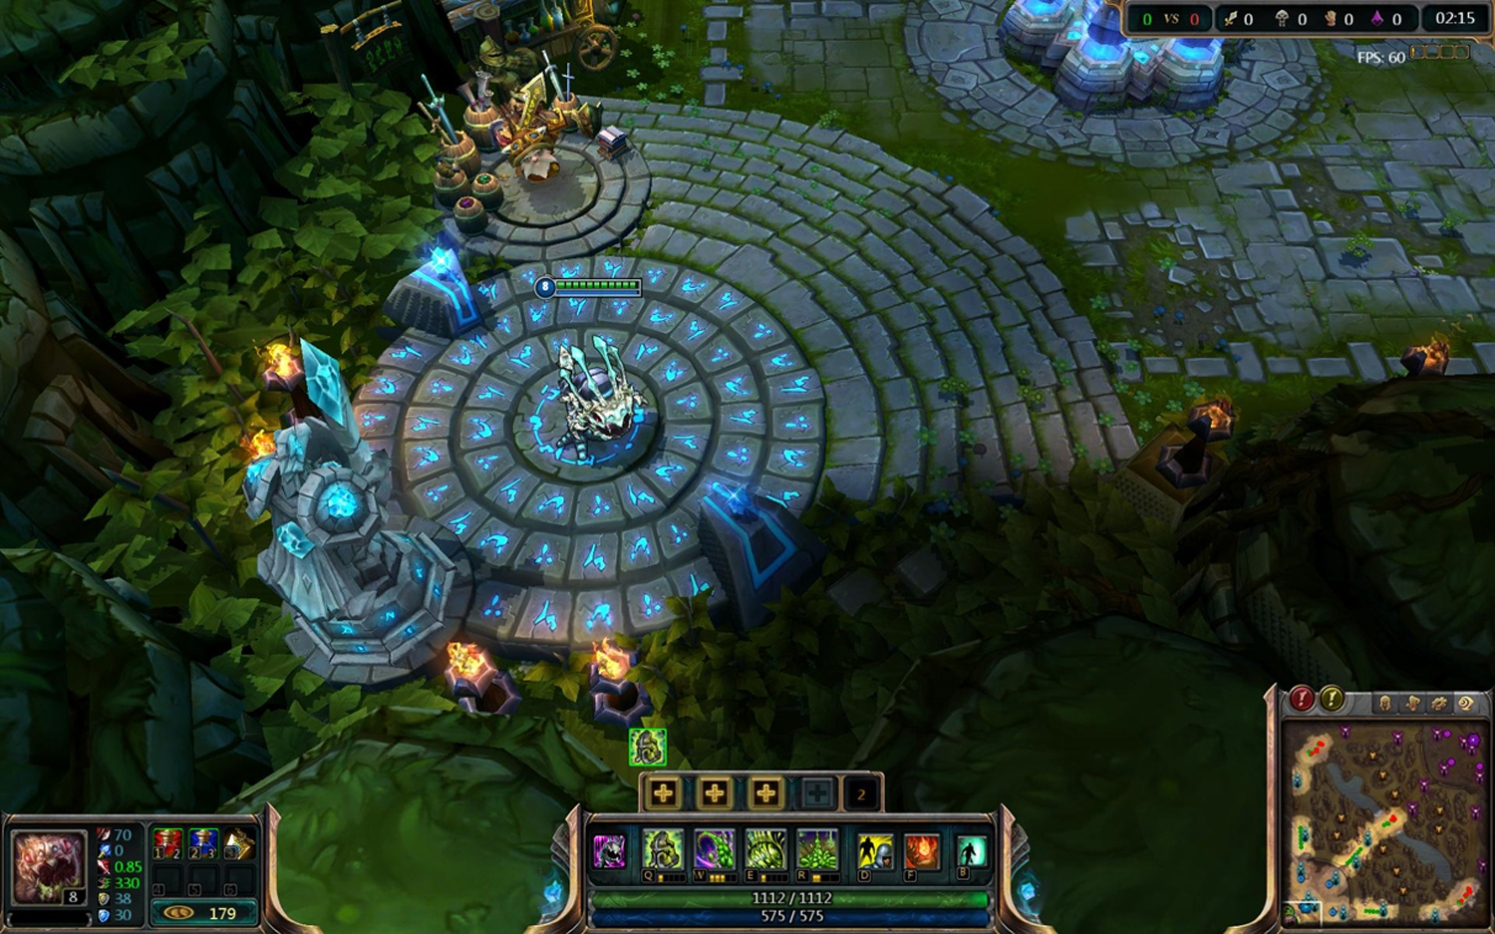 League of Legends: Game HUD and Item Shop update